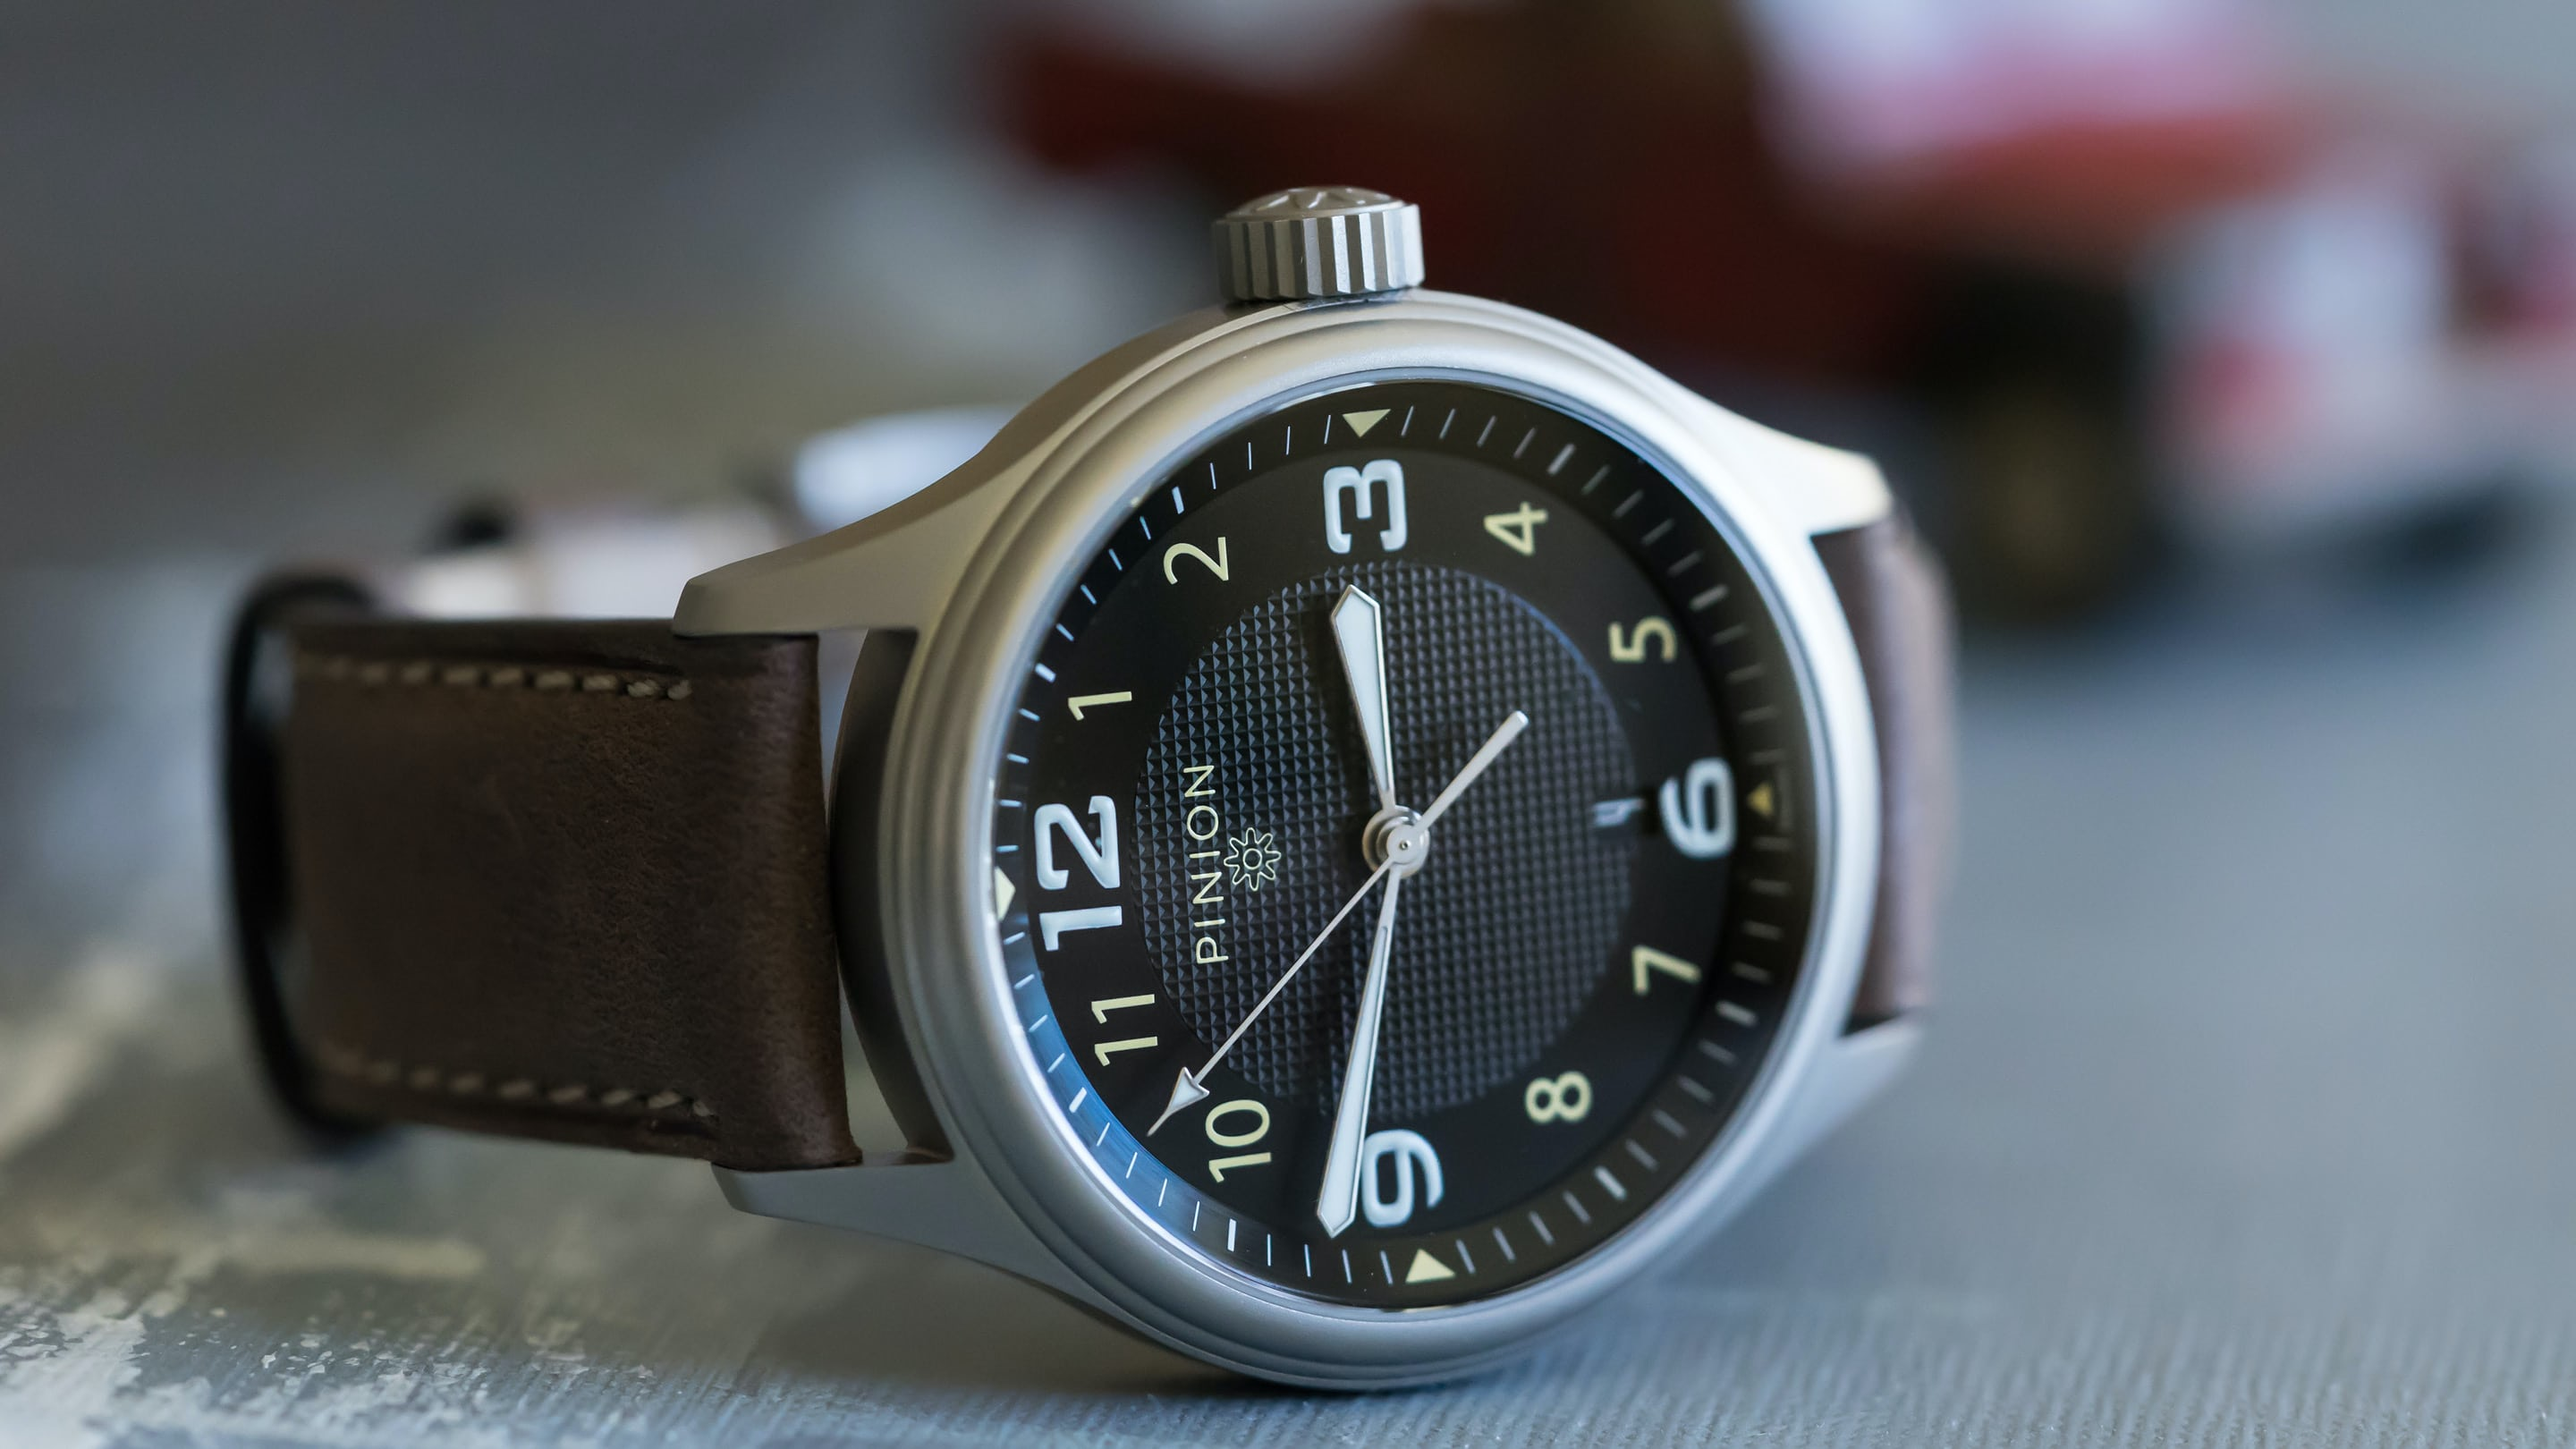 pinion south on in watch company watches hodinkee by oxfordshire made british atom